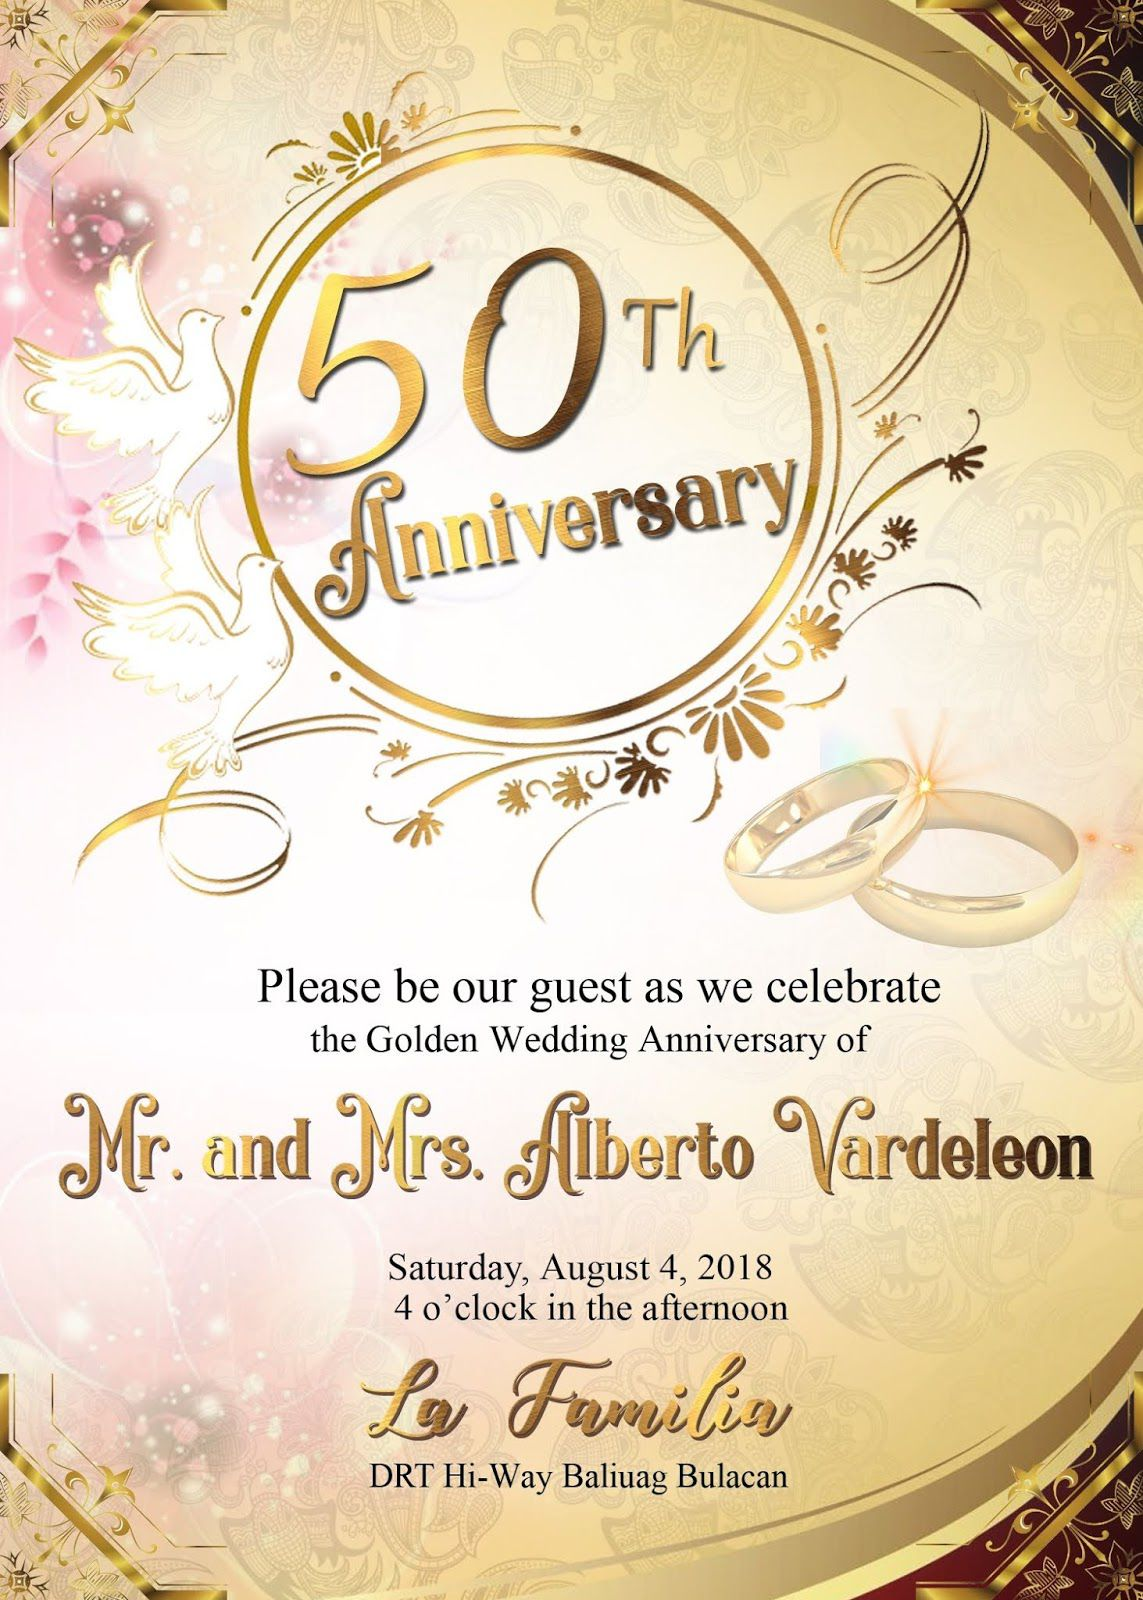 007 Impressive 50th Wedding Anniversary Invitation Sample High Resolution  Samples Free Party Template Card IdeaFull